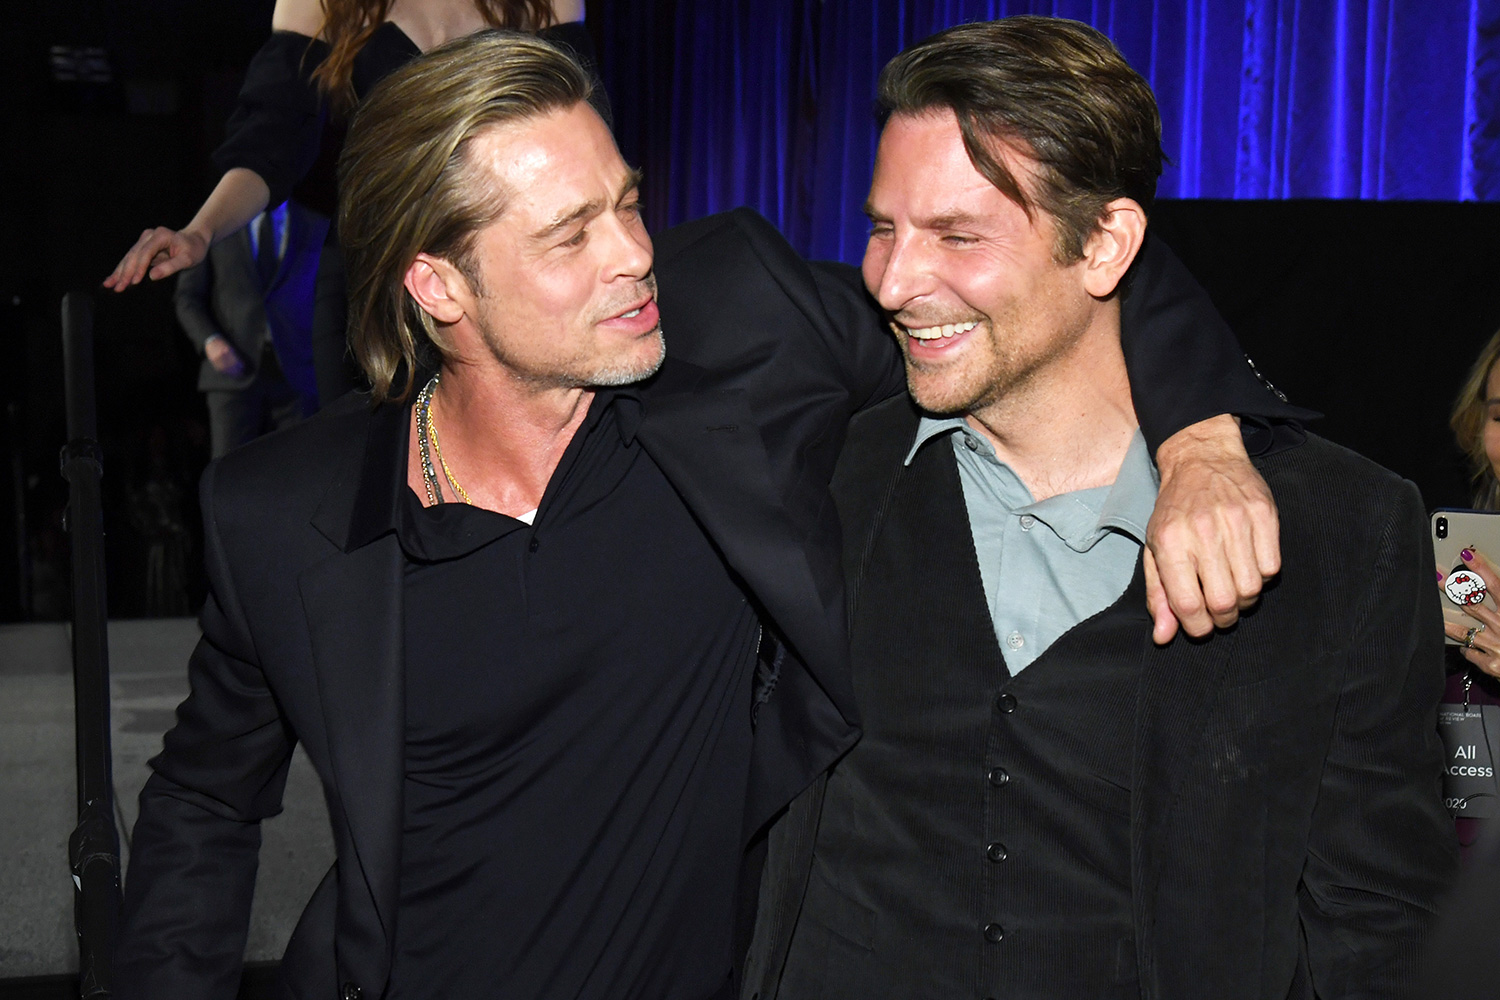 Brad Pitt and Bradley Cooper attend The National Board of Review Annual Awards Gala at Cipriani 42nd Street on January 08, 2020 in New York City